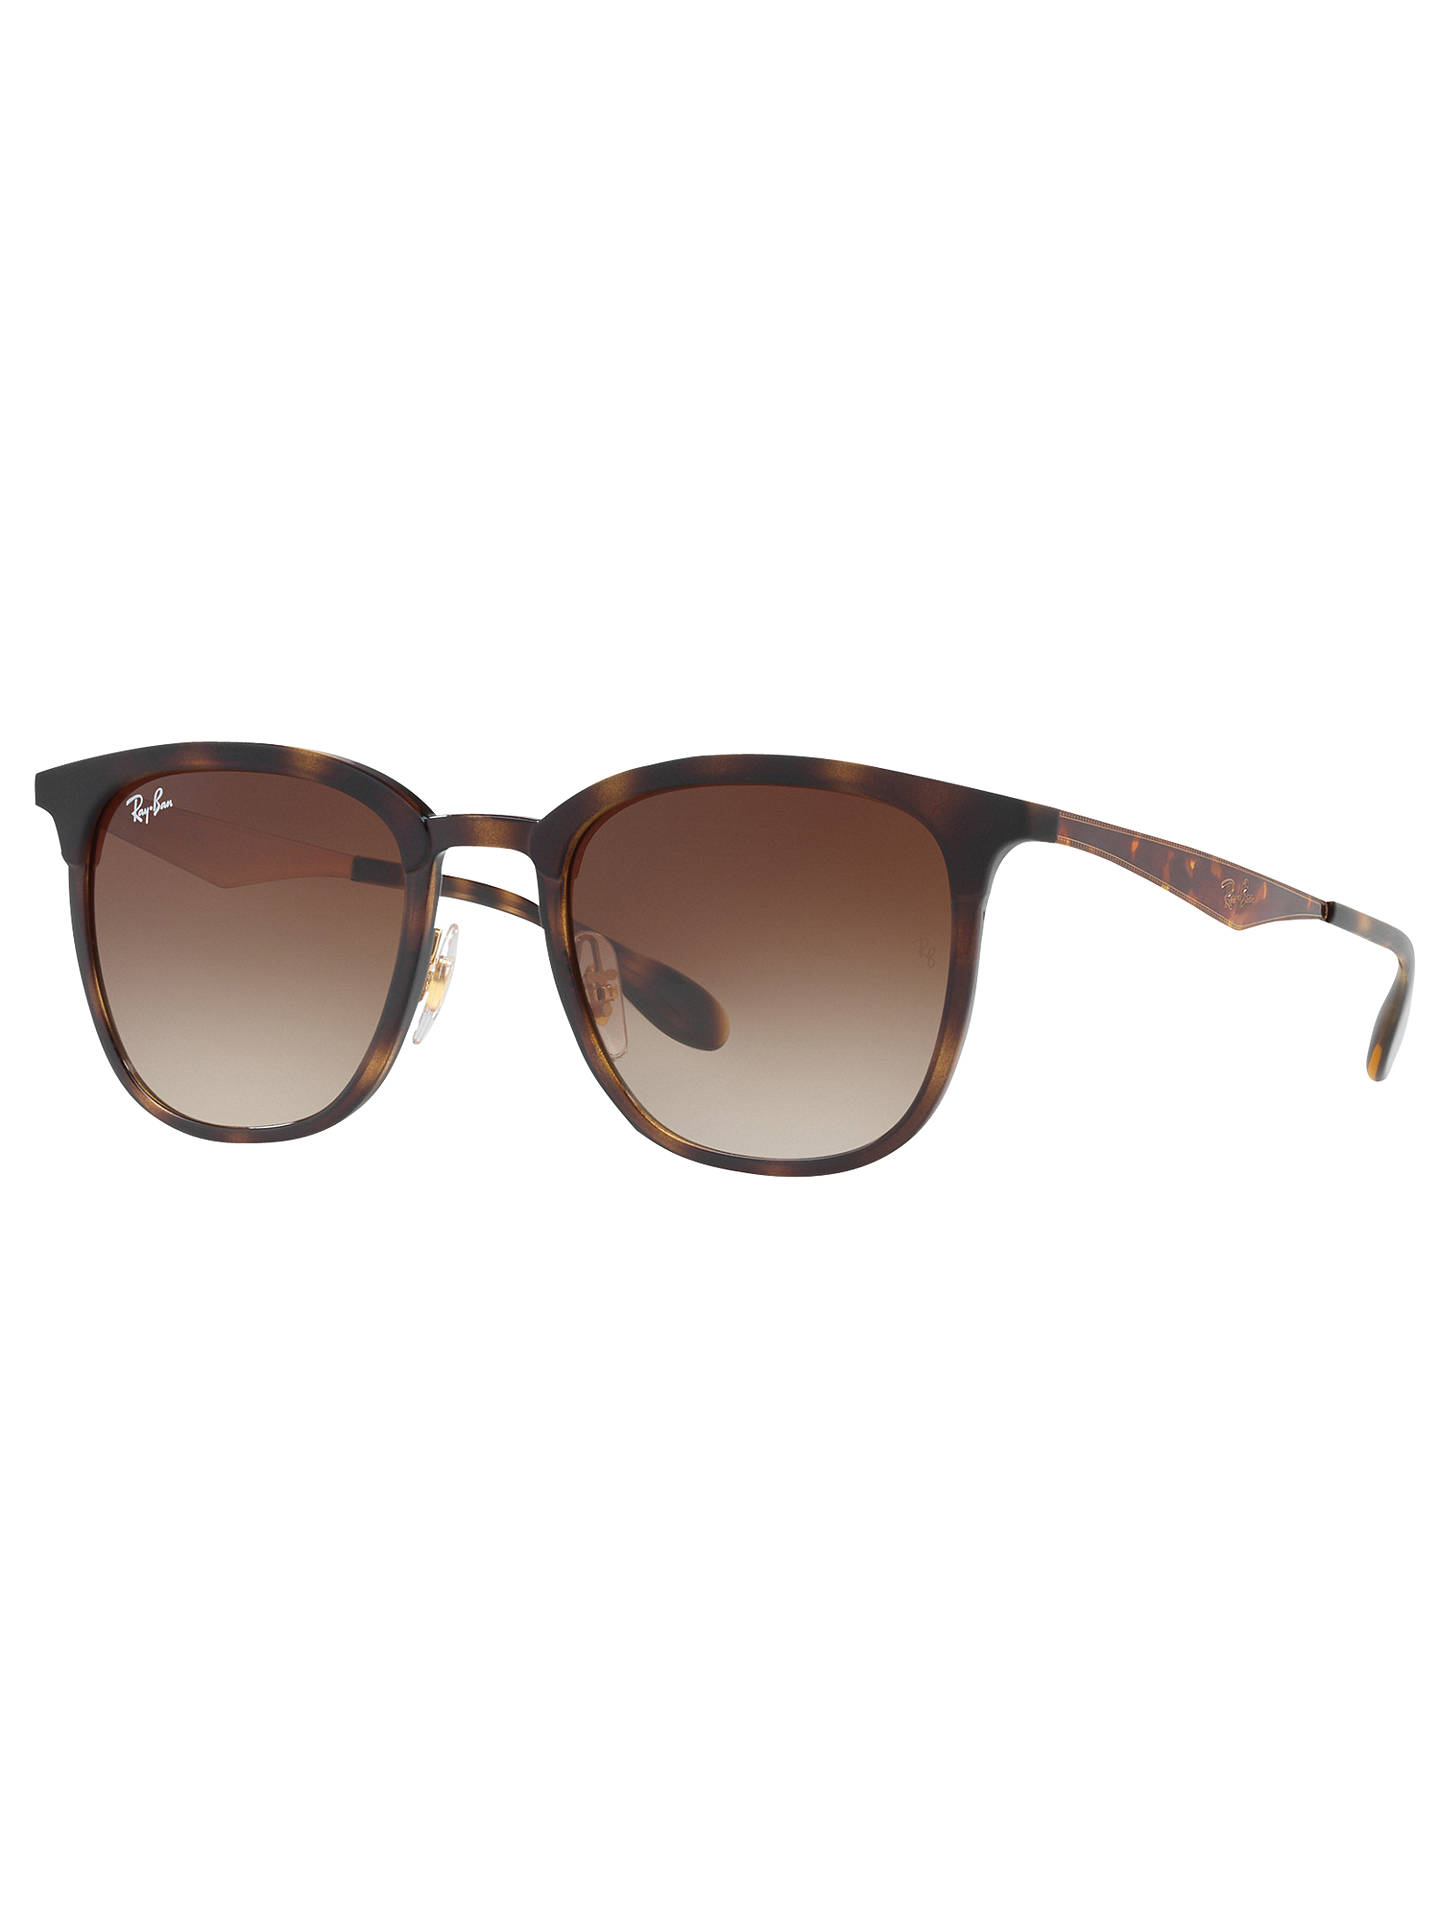 79b5cfd4f2a2 Ray-Ban RB4278 Square Sunglasses at John Lewis   Partners